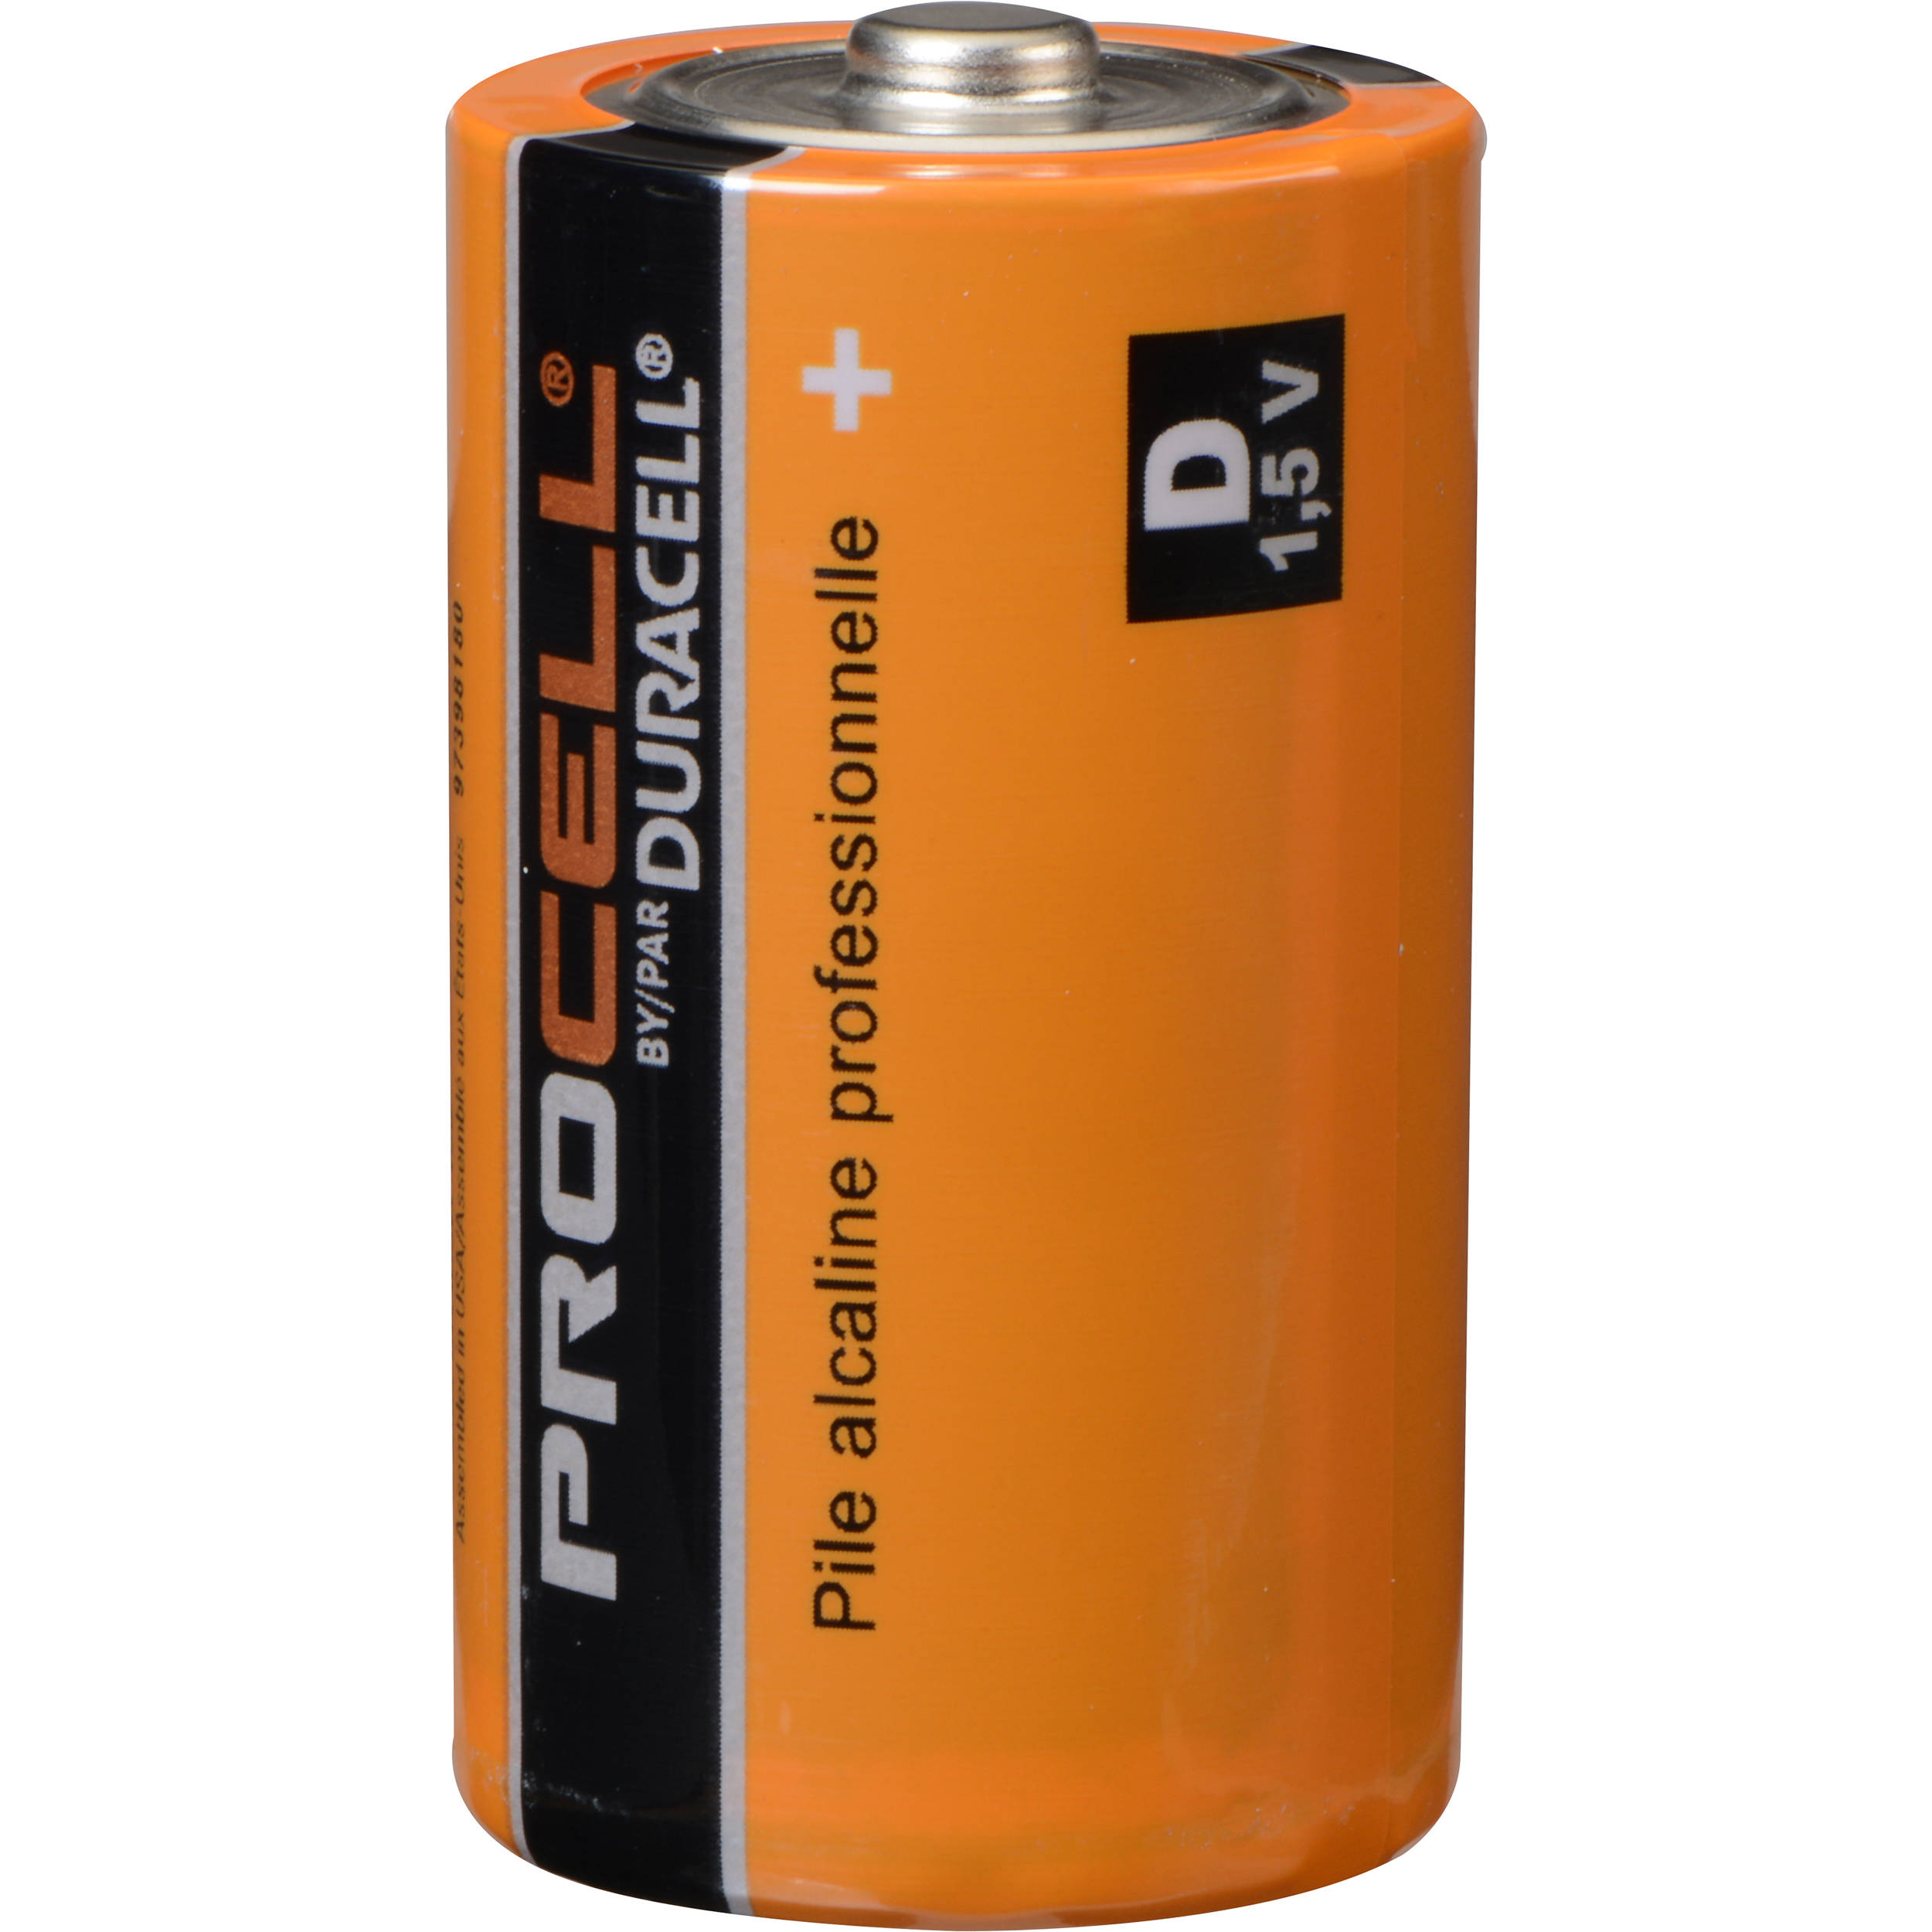 information product dimensions procell duracell device